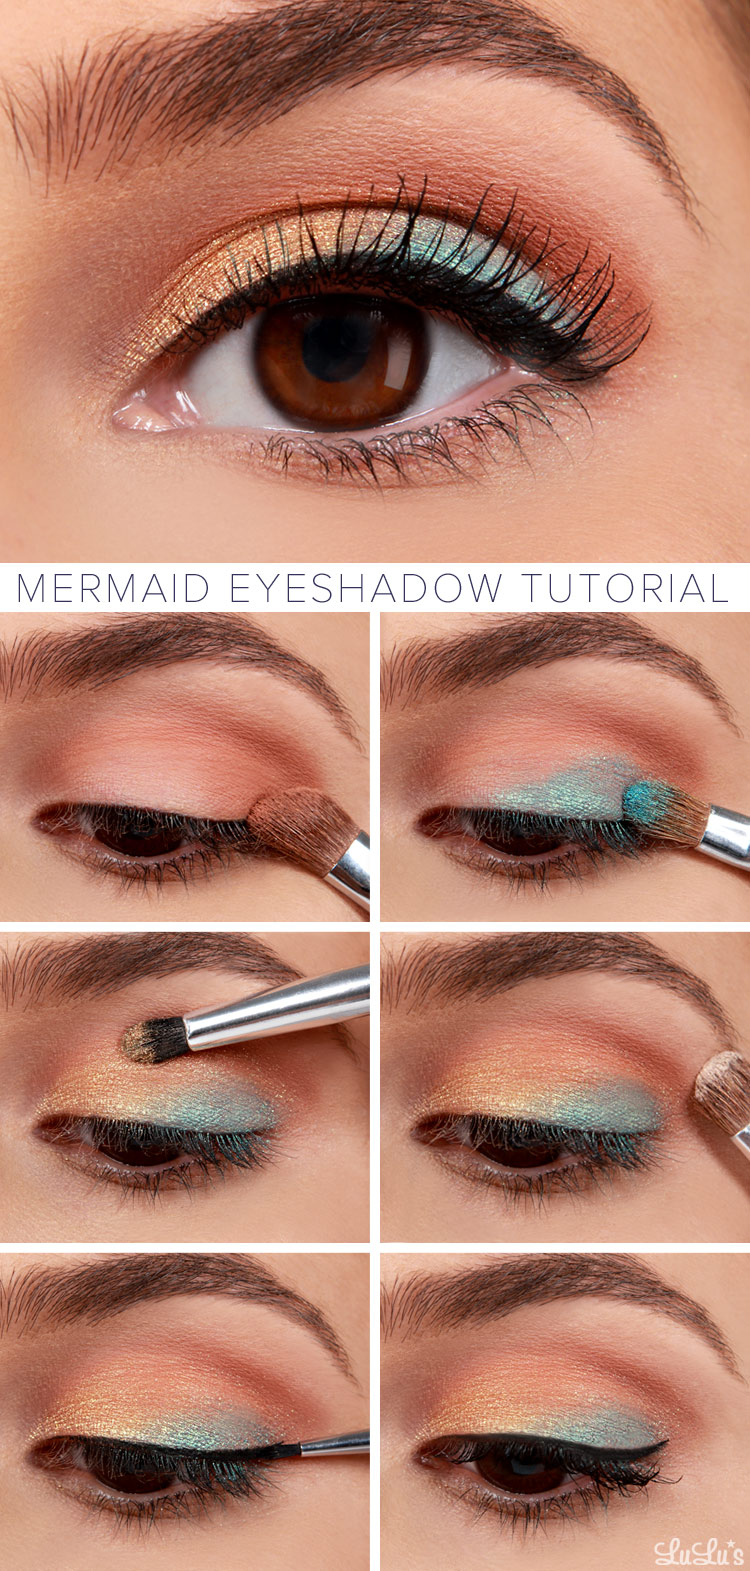 lulus how to mermaid eyeshadow makeup tutorial fashion blog. Black Bedroom Furniture Sets. Home Design Ideas